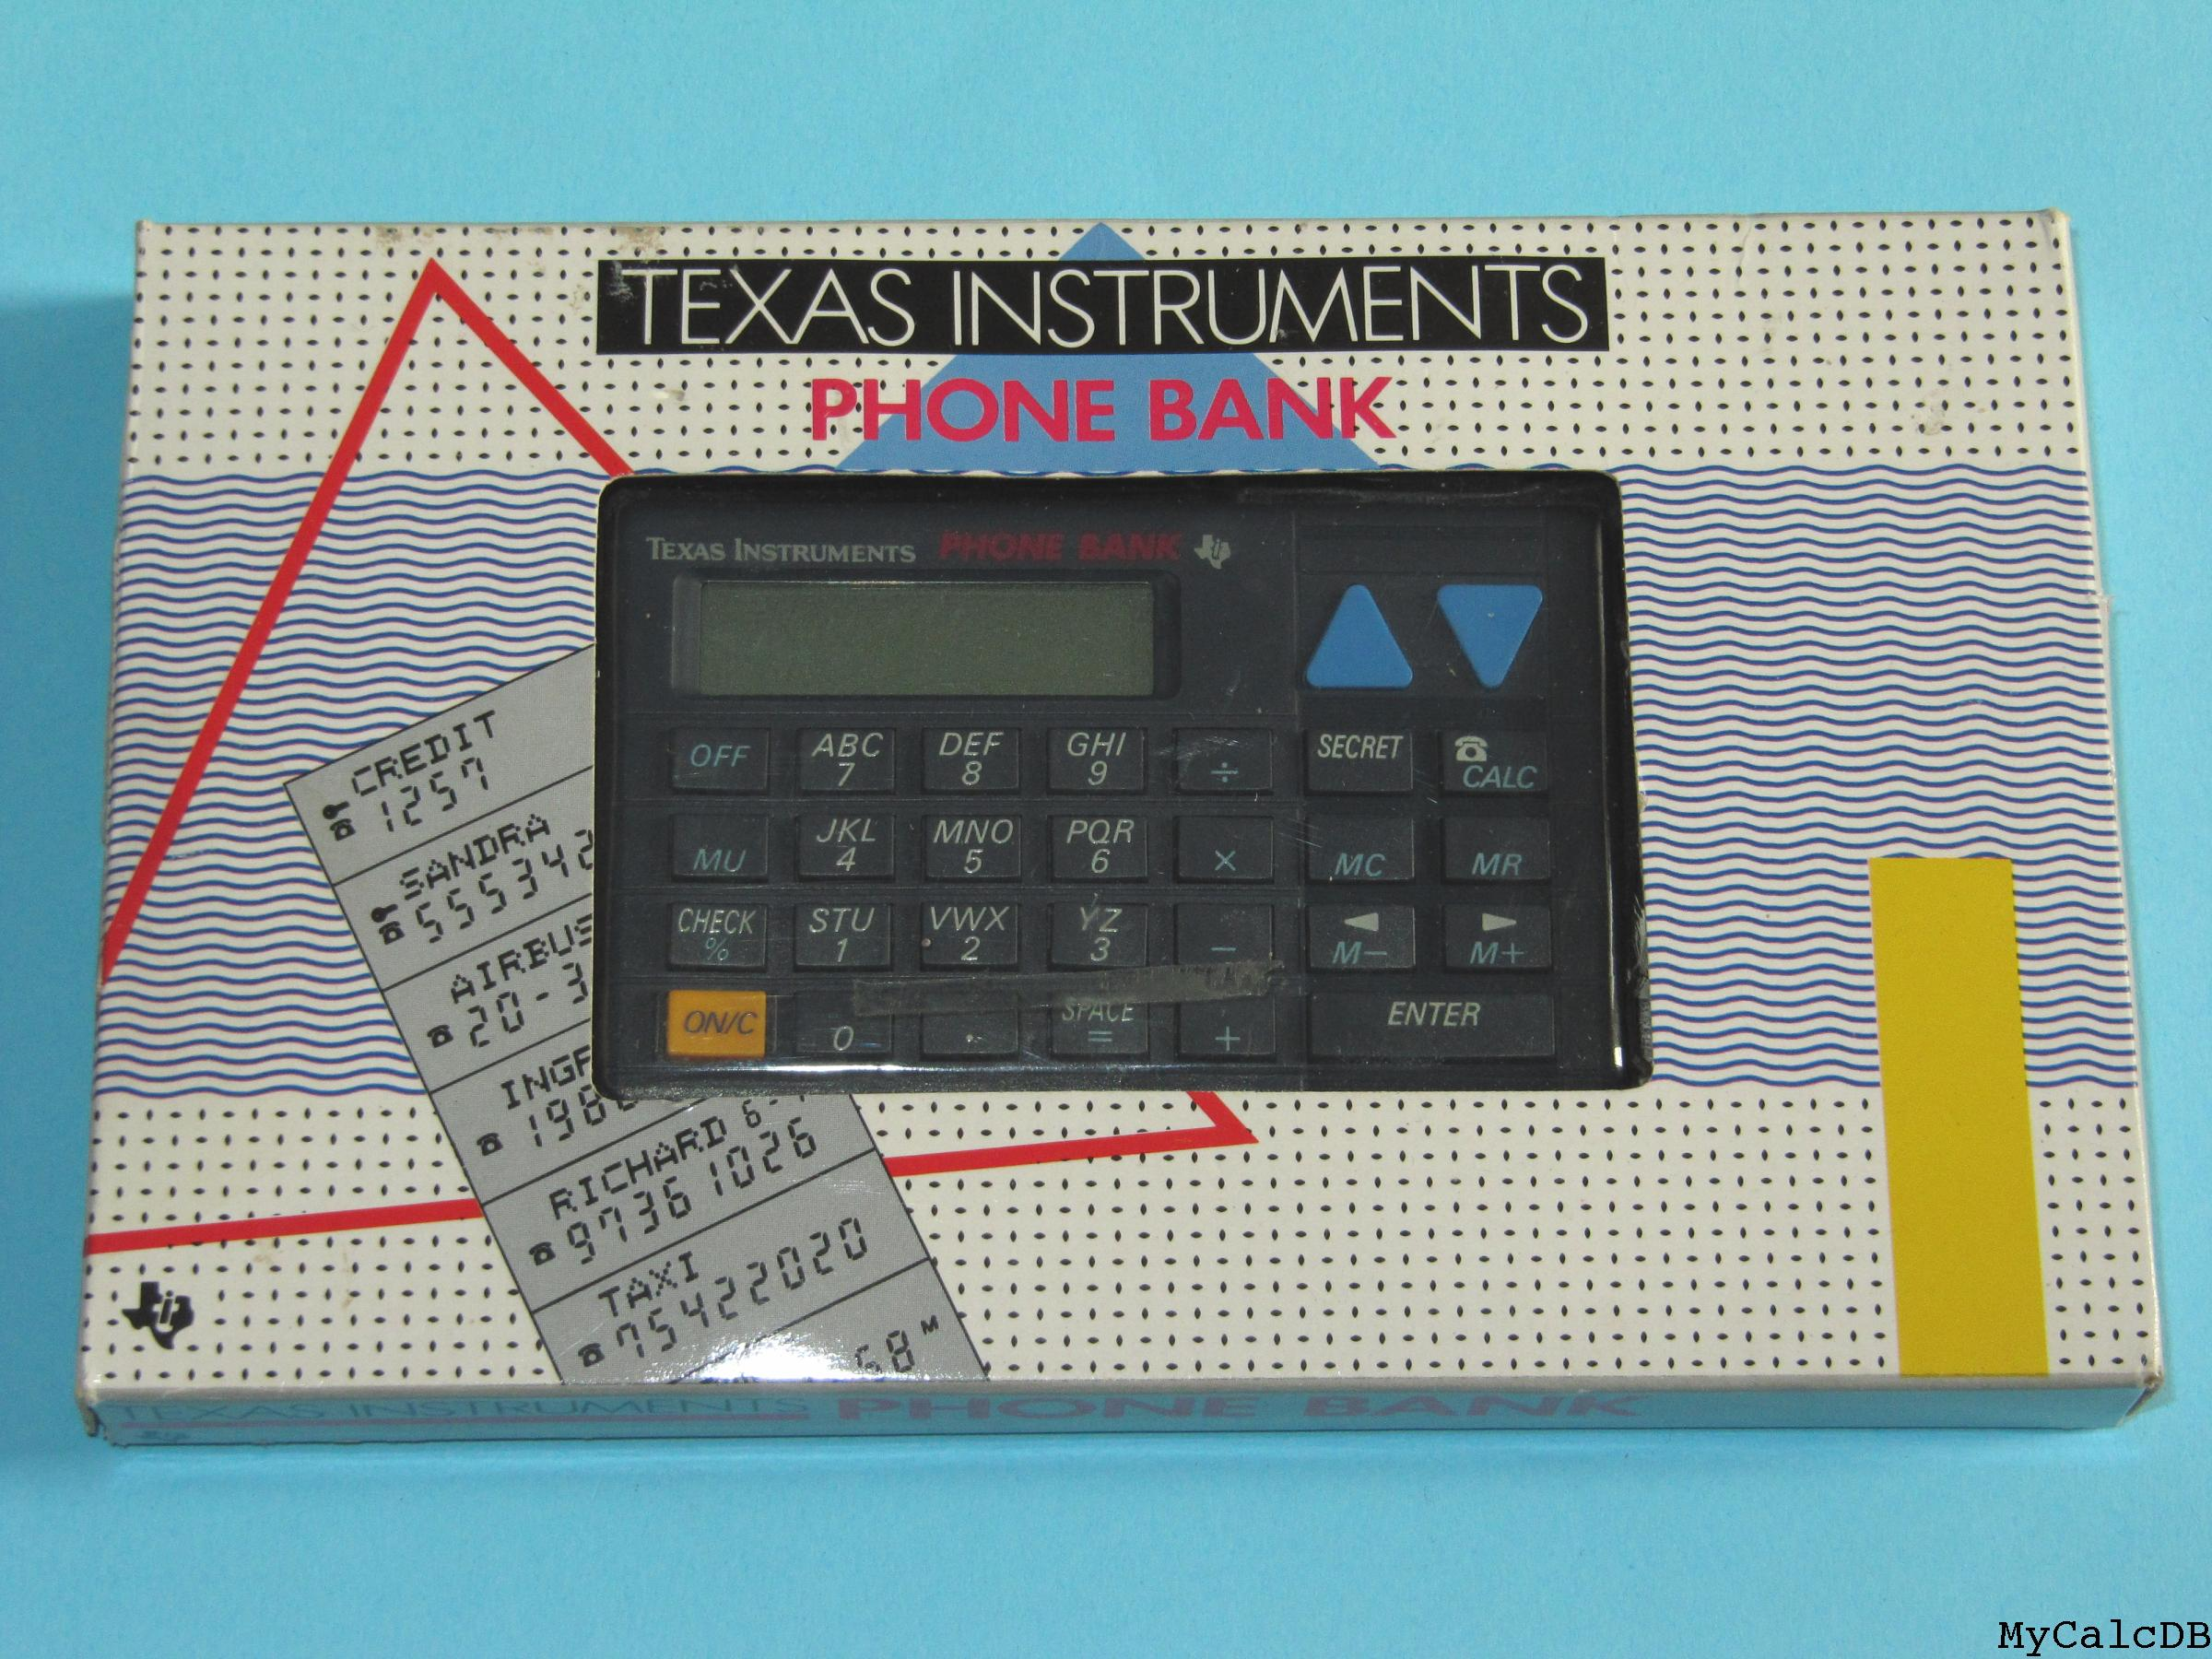 Texas Instruments PHONE BANK